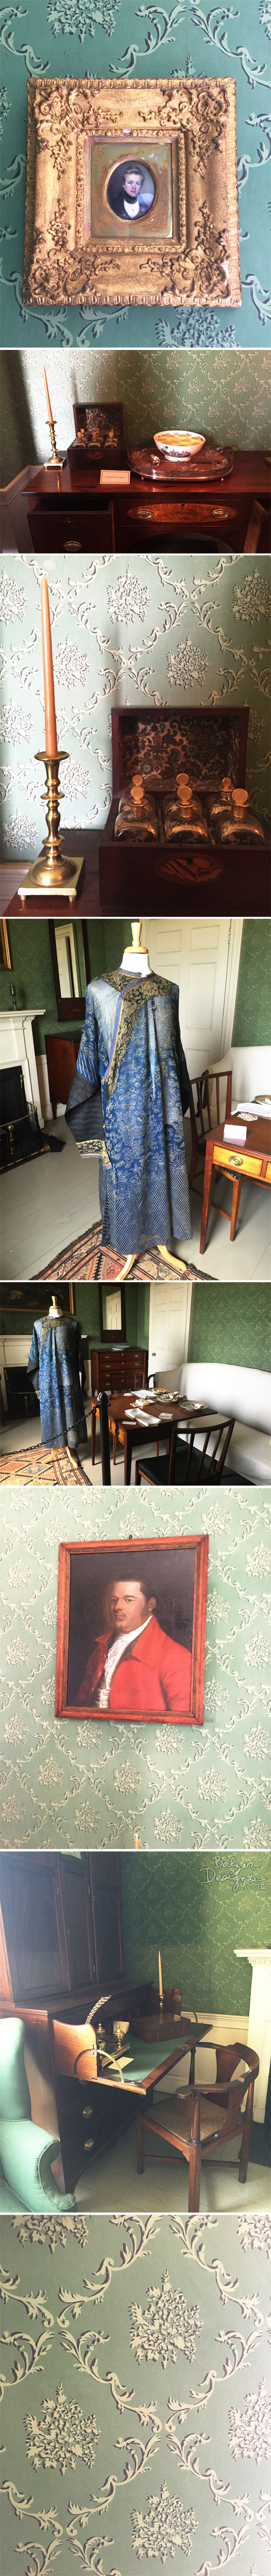 from the Balzer Designs Blog: Jane Austen Tour of Gore Place